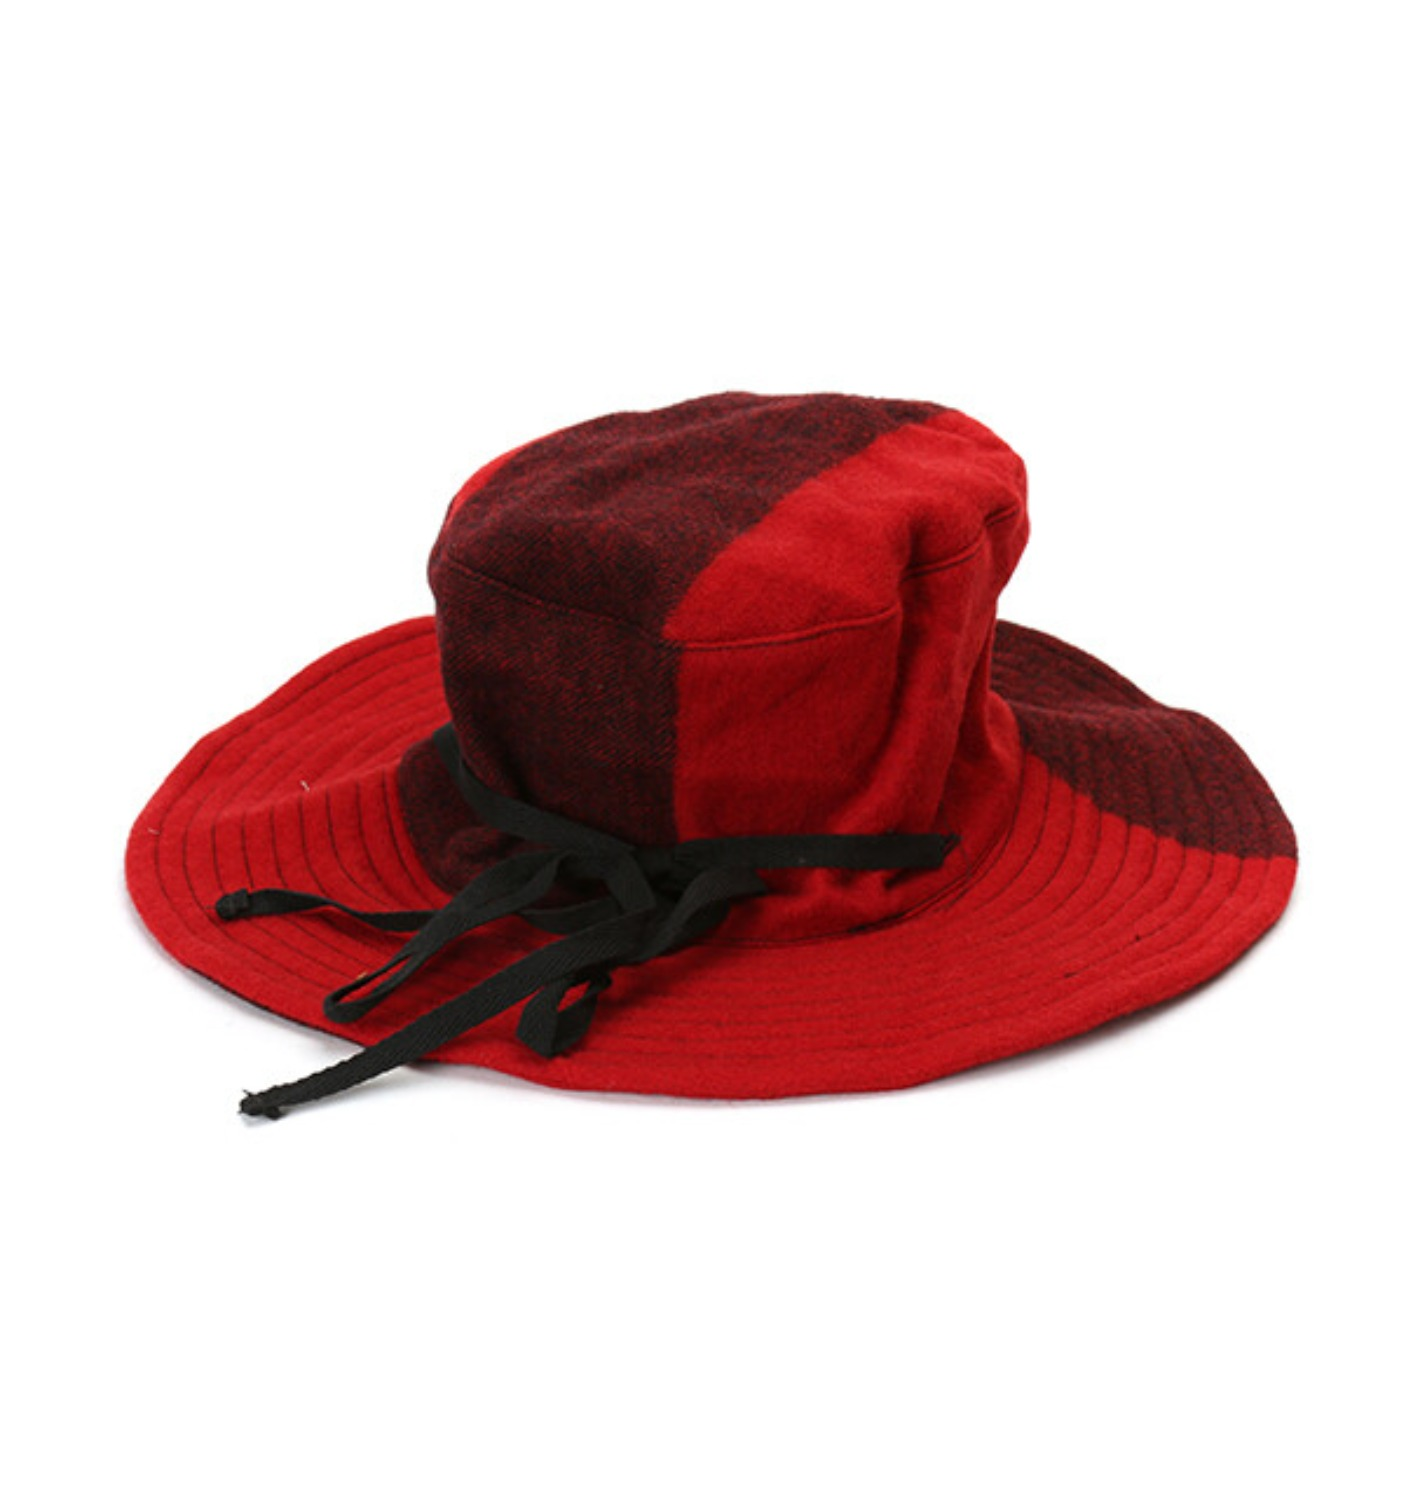 CRUSHER HAT RED BIG PLAID WOOL MELTON(F8H0556)